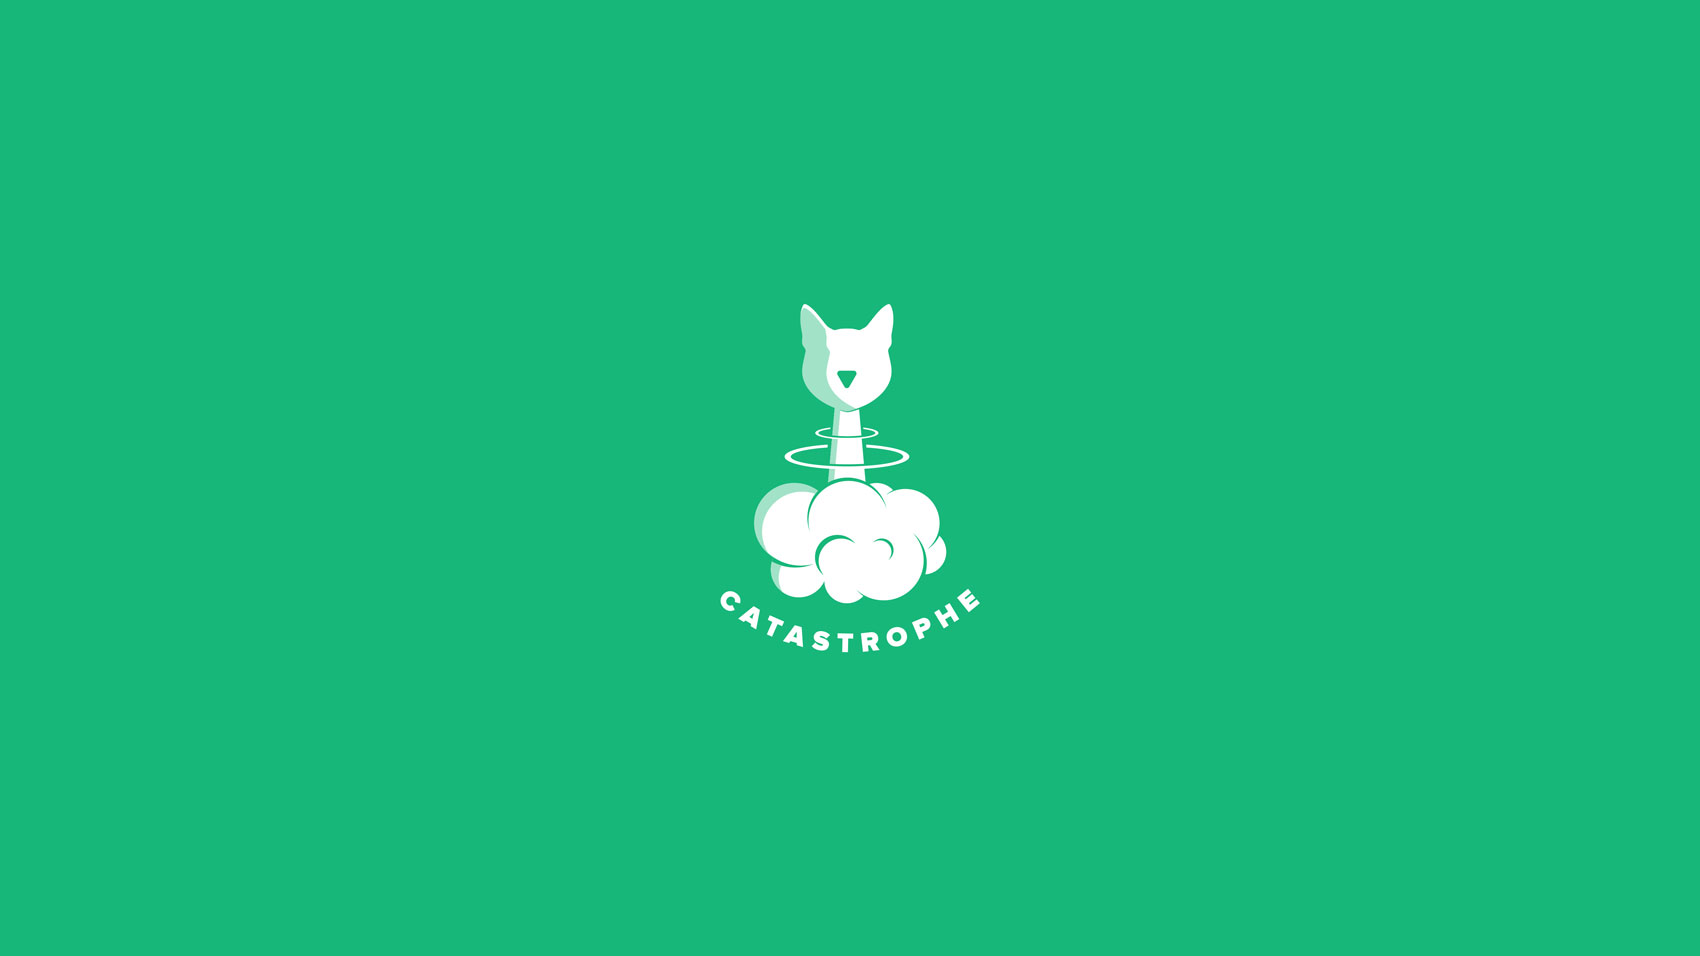 Catastrophe logo design